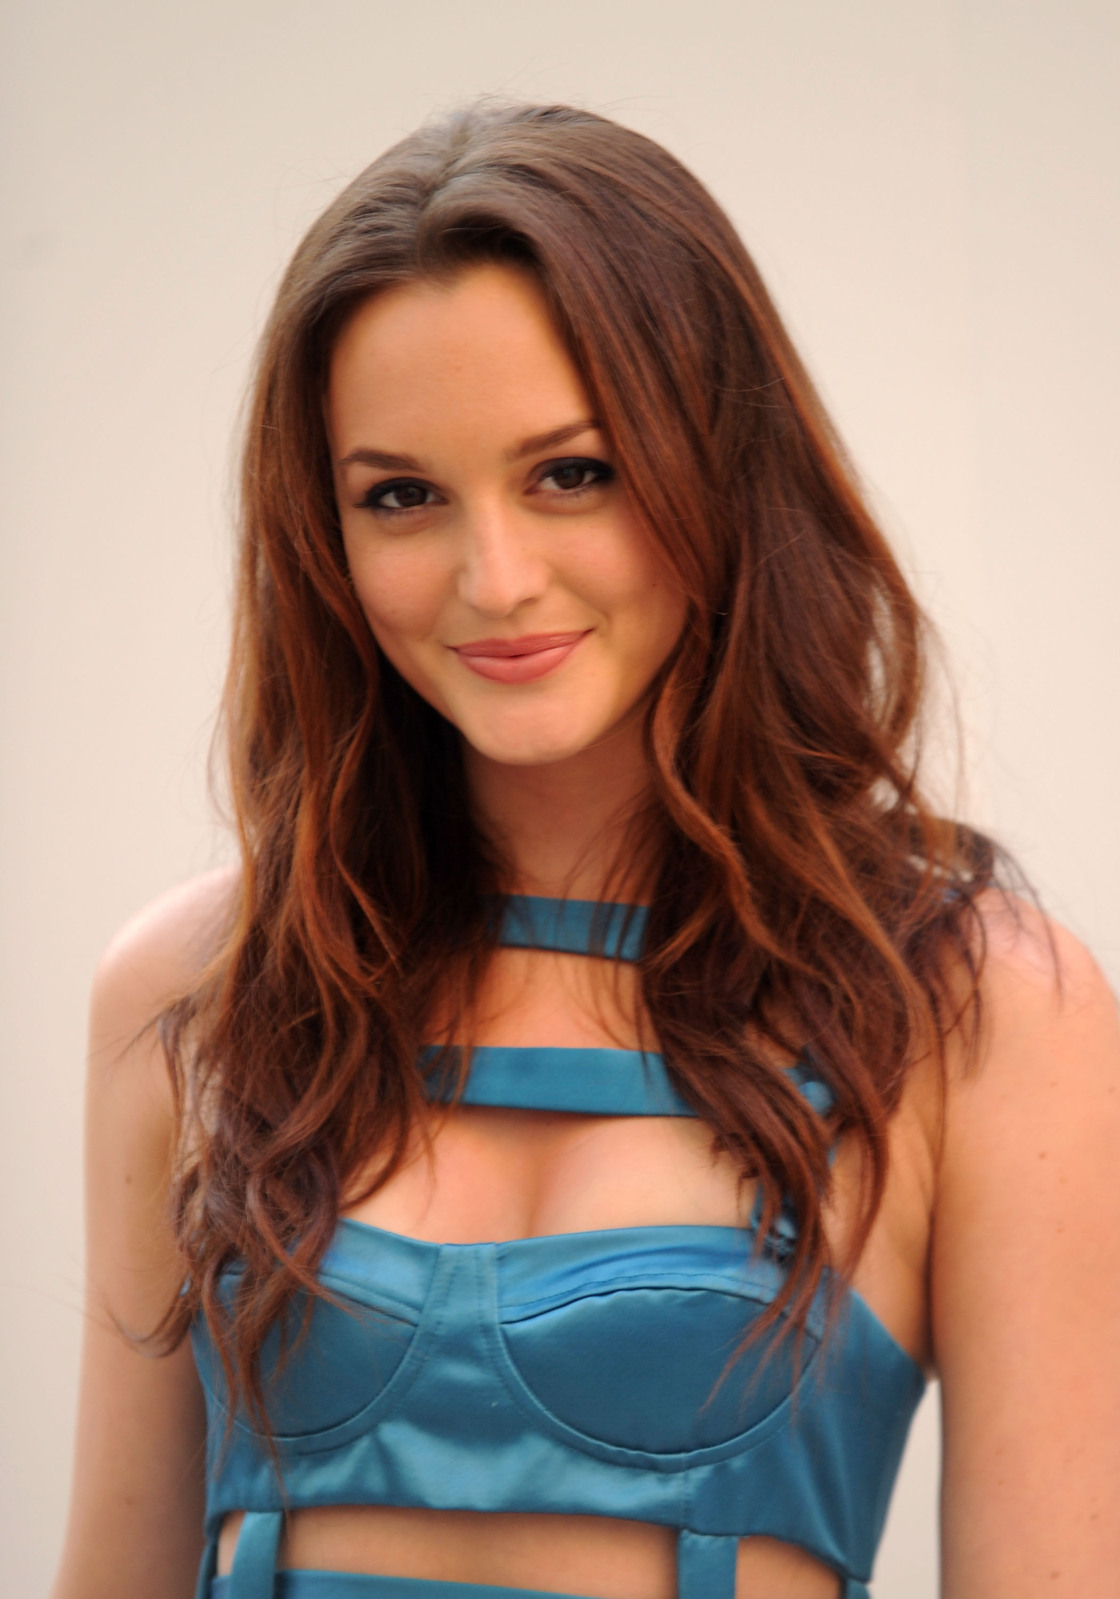 Leighton Meester's Hot and Cute Wallpaper